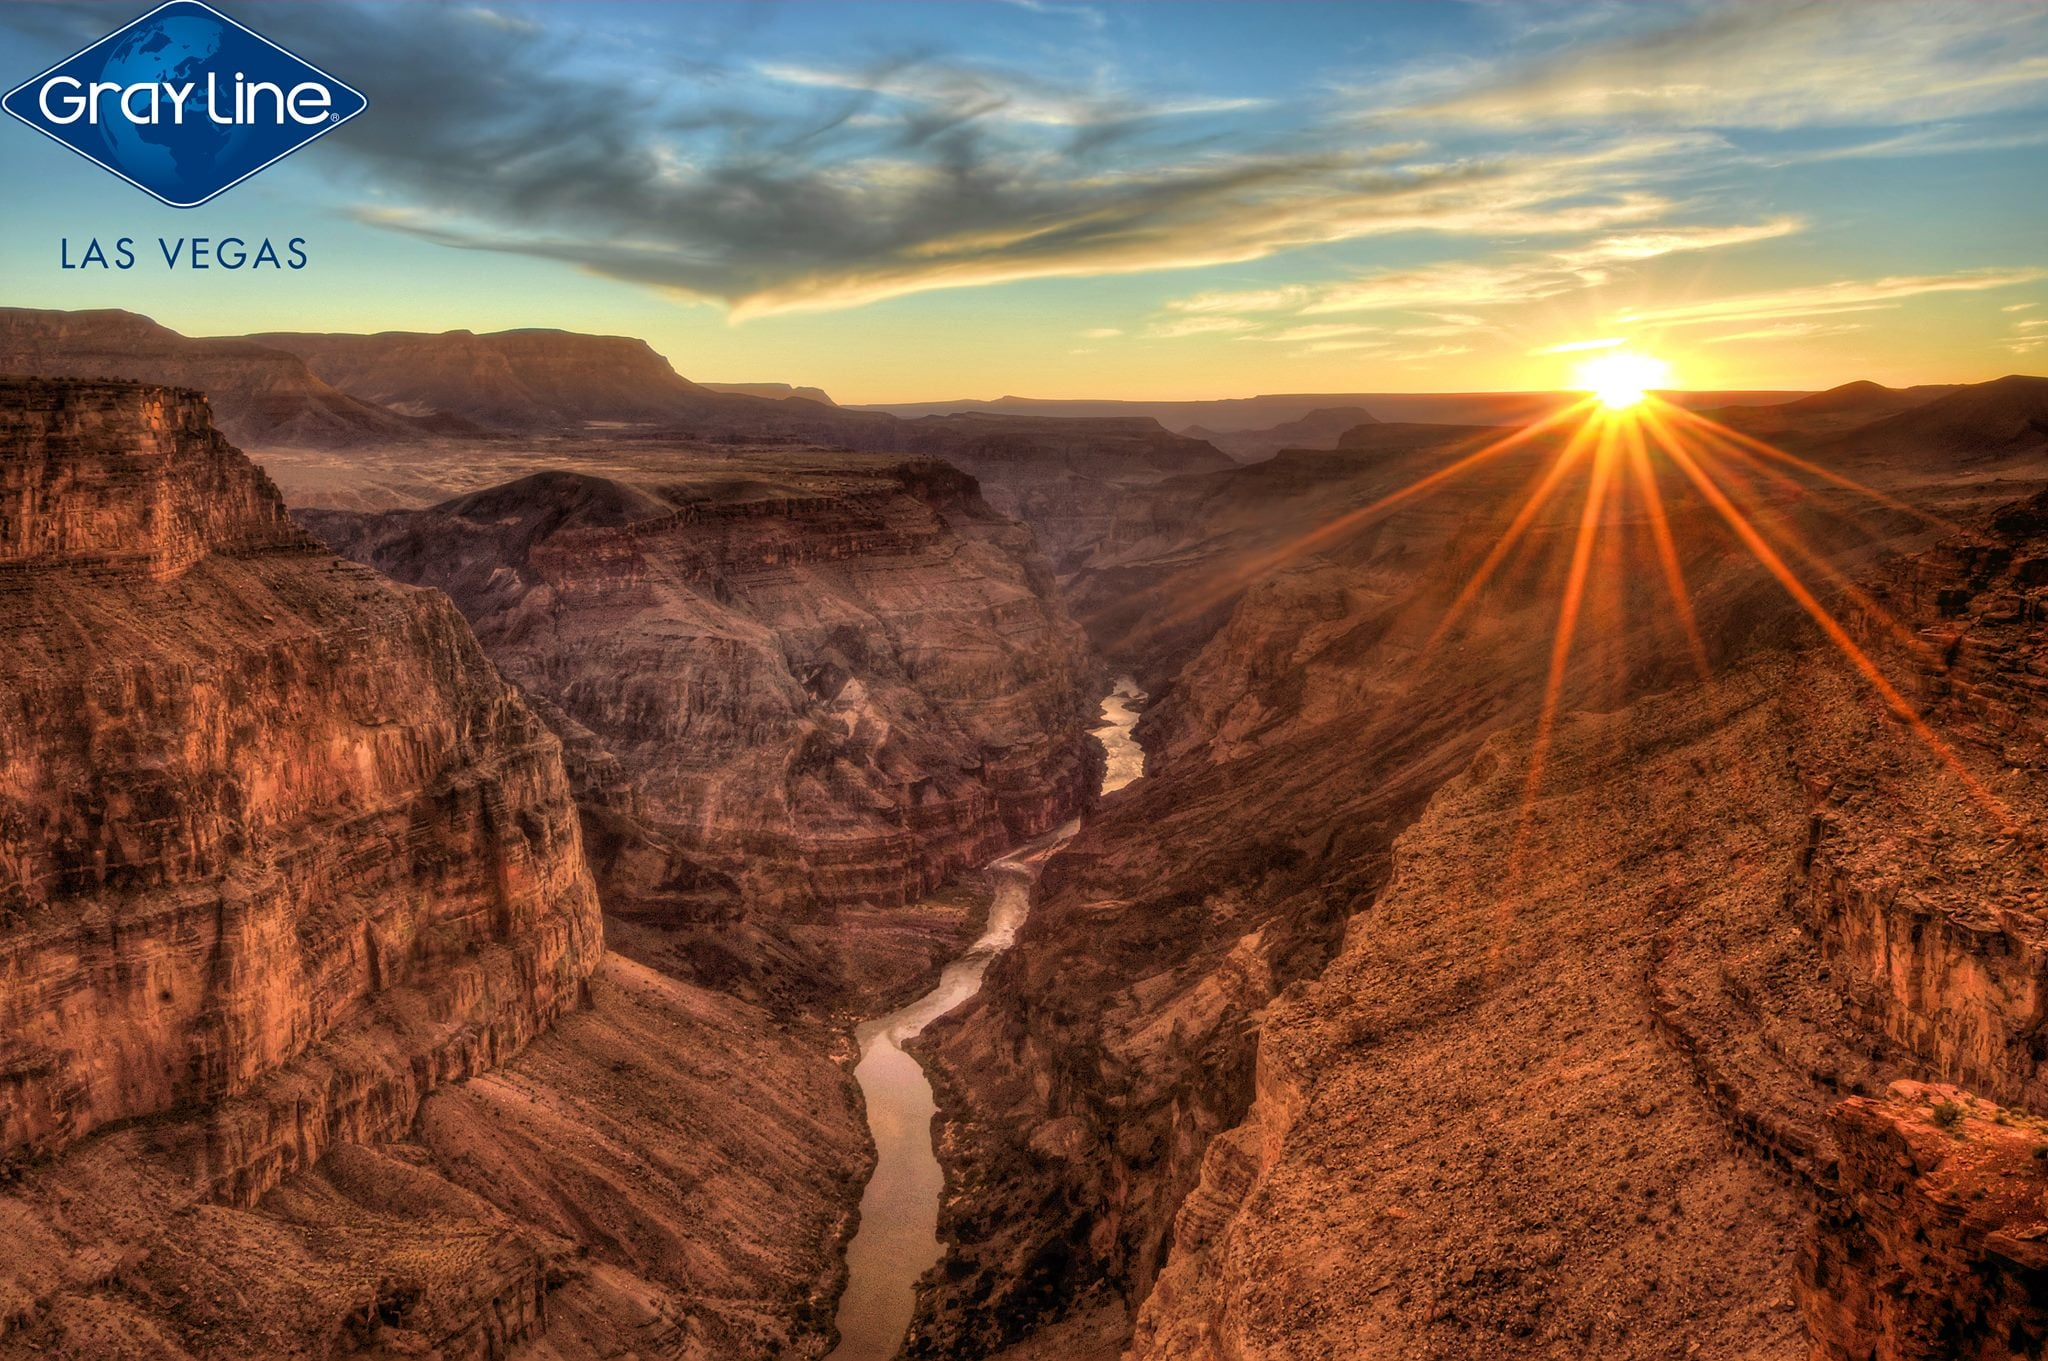 The Grand Canyon West Rim